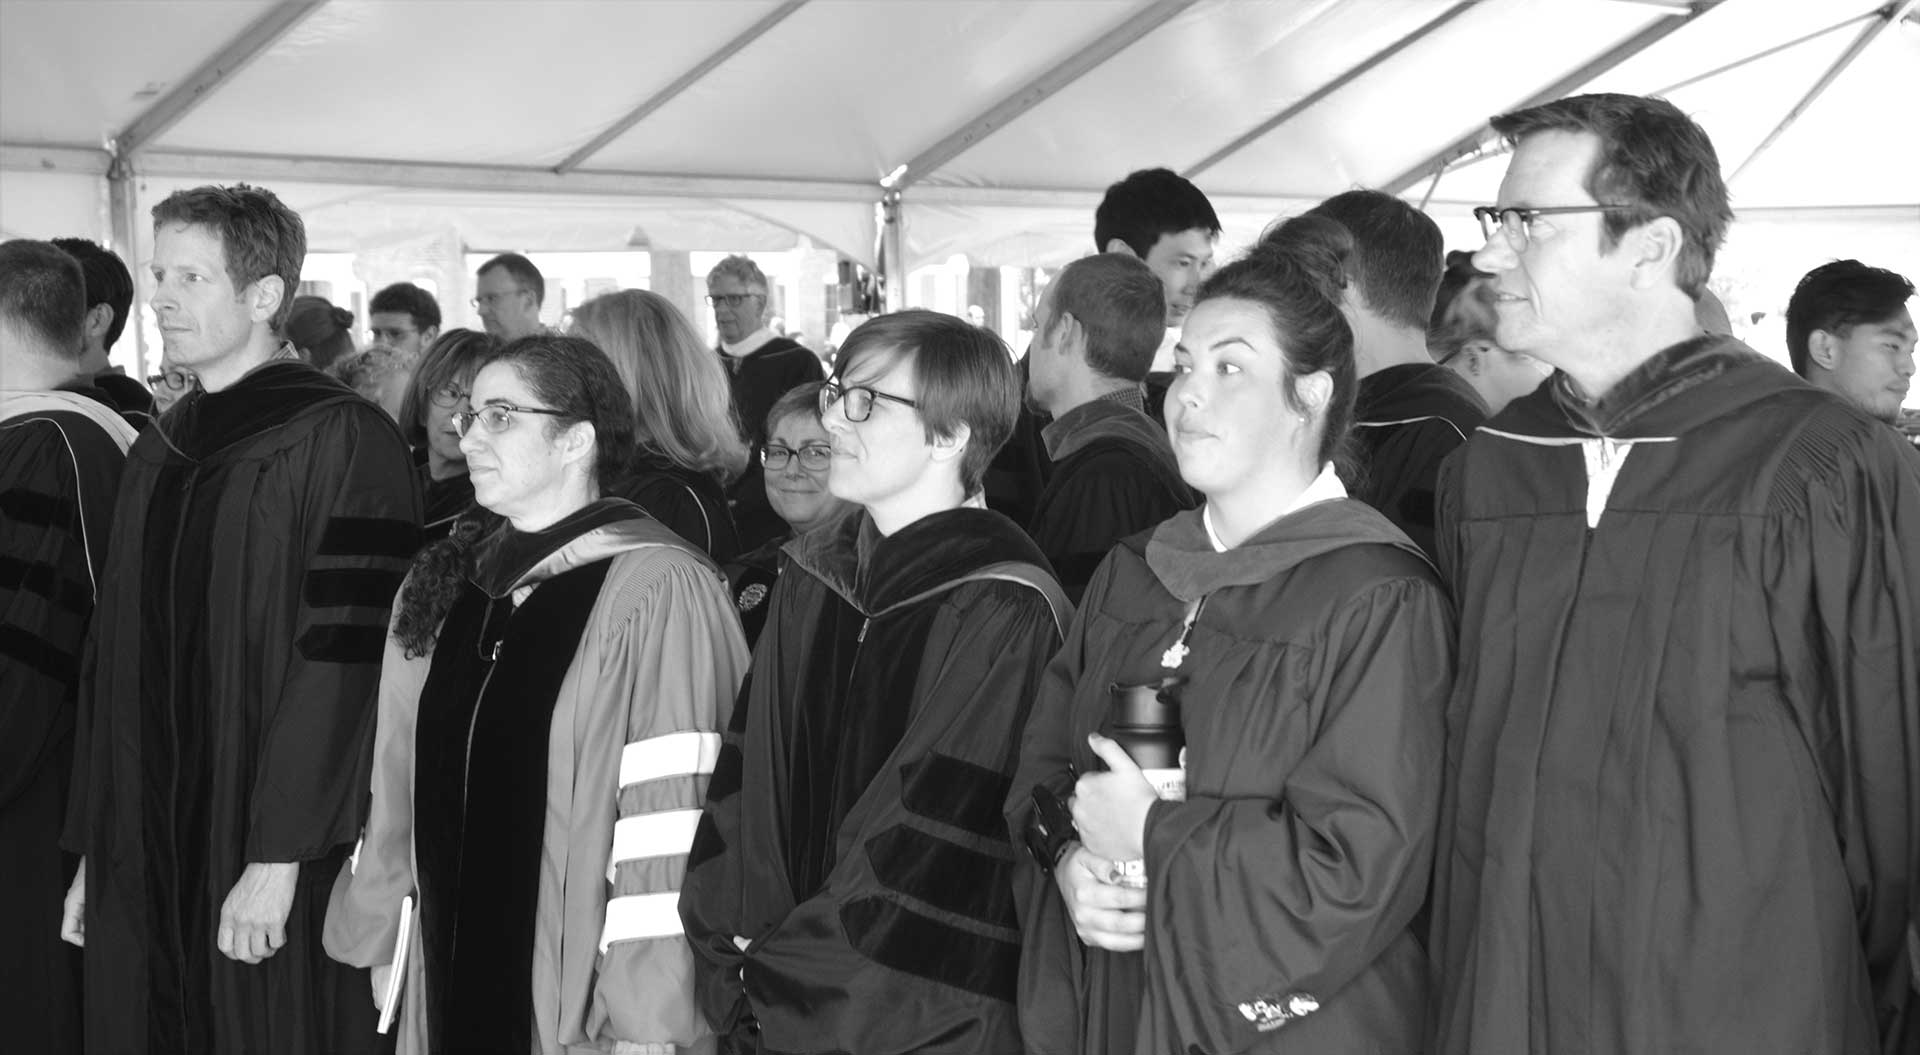 SMCM 2018 Convocation, Faculty under the tent, Photo by Richard-Brewer